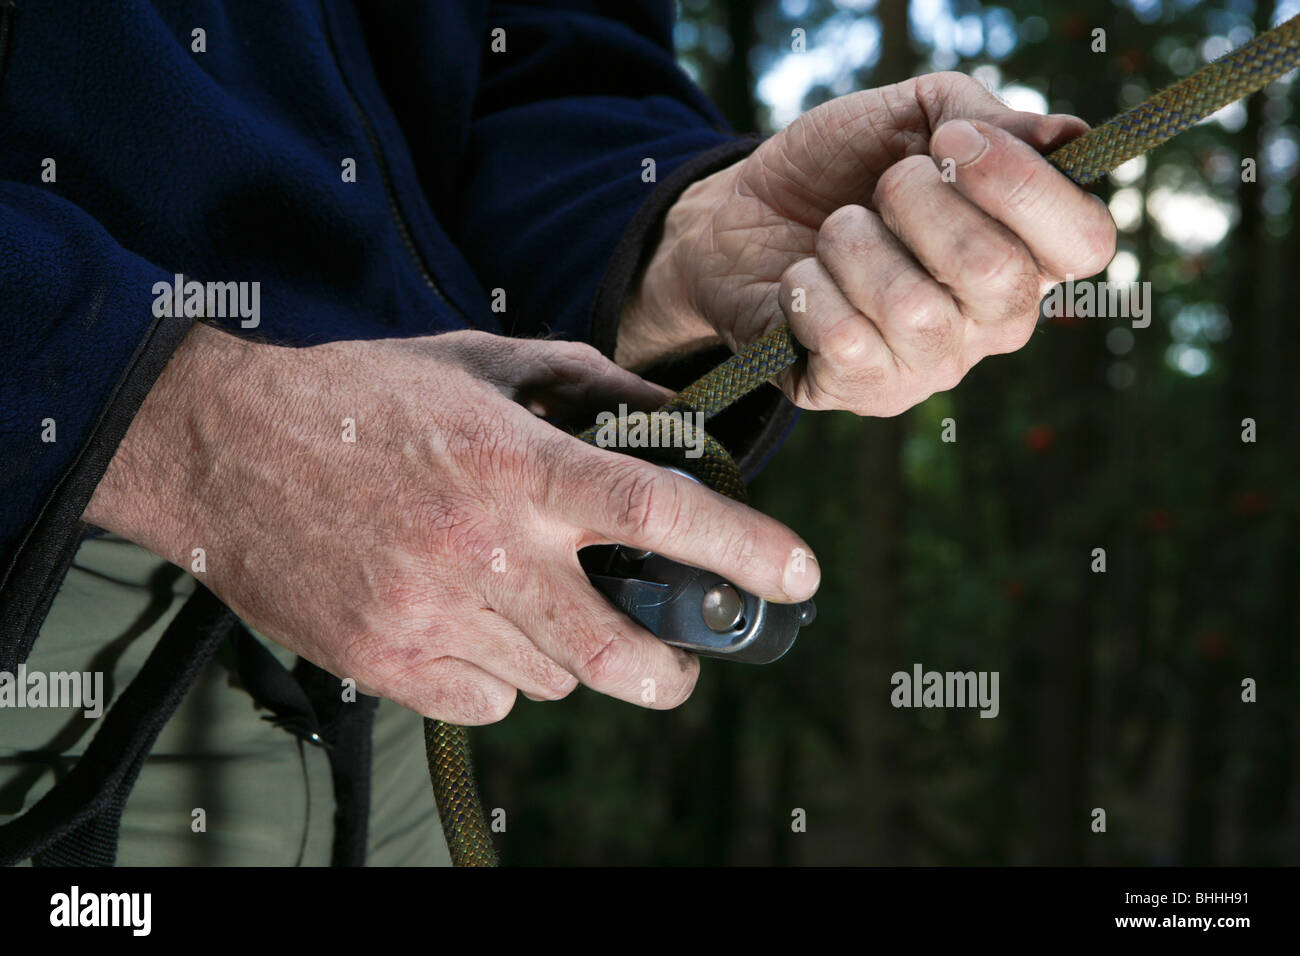 Climber s hands holding rope and belay device, Palatinate, Germany - Stock Image